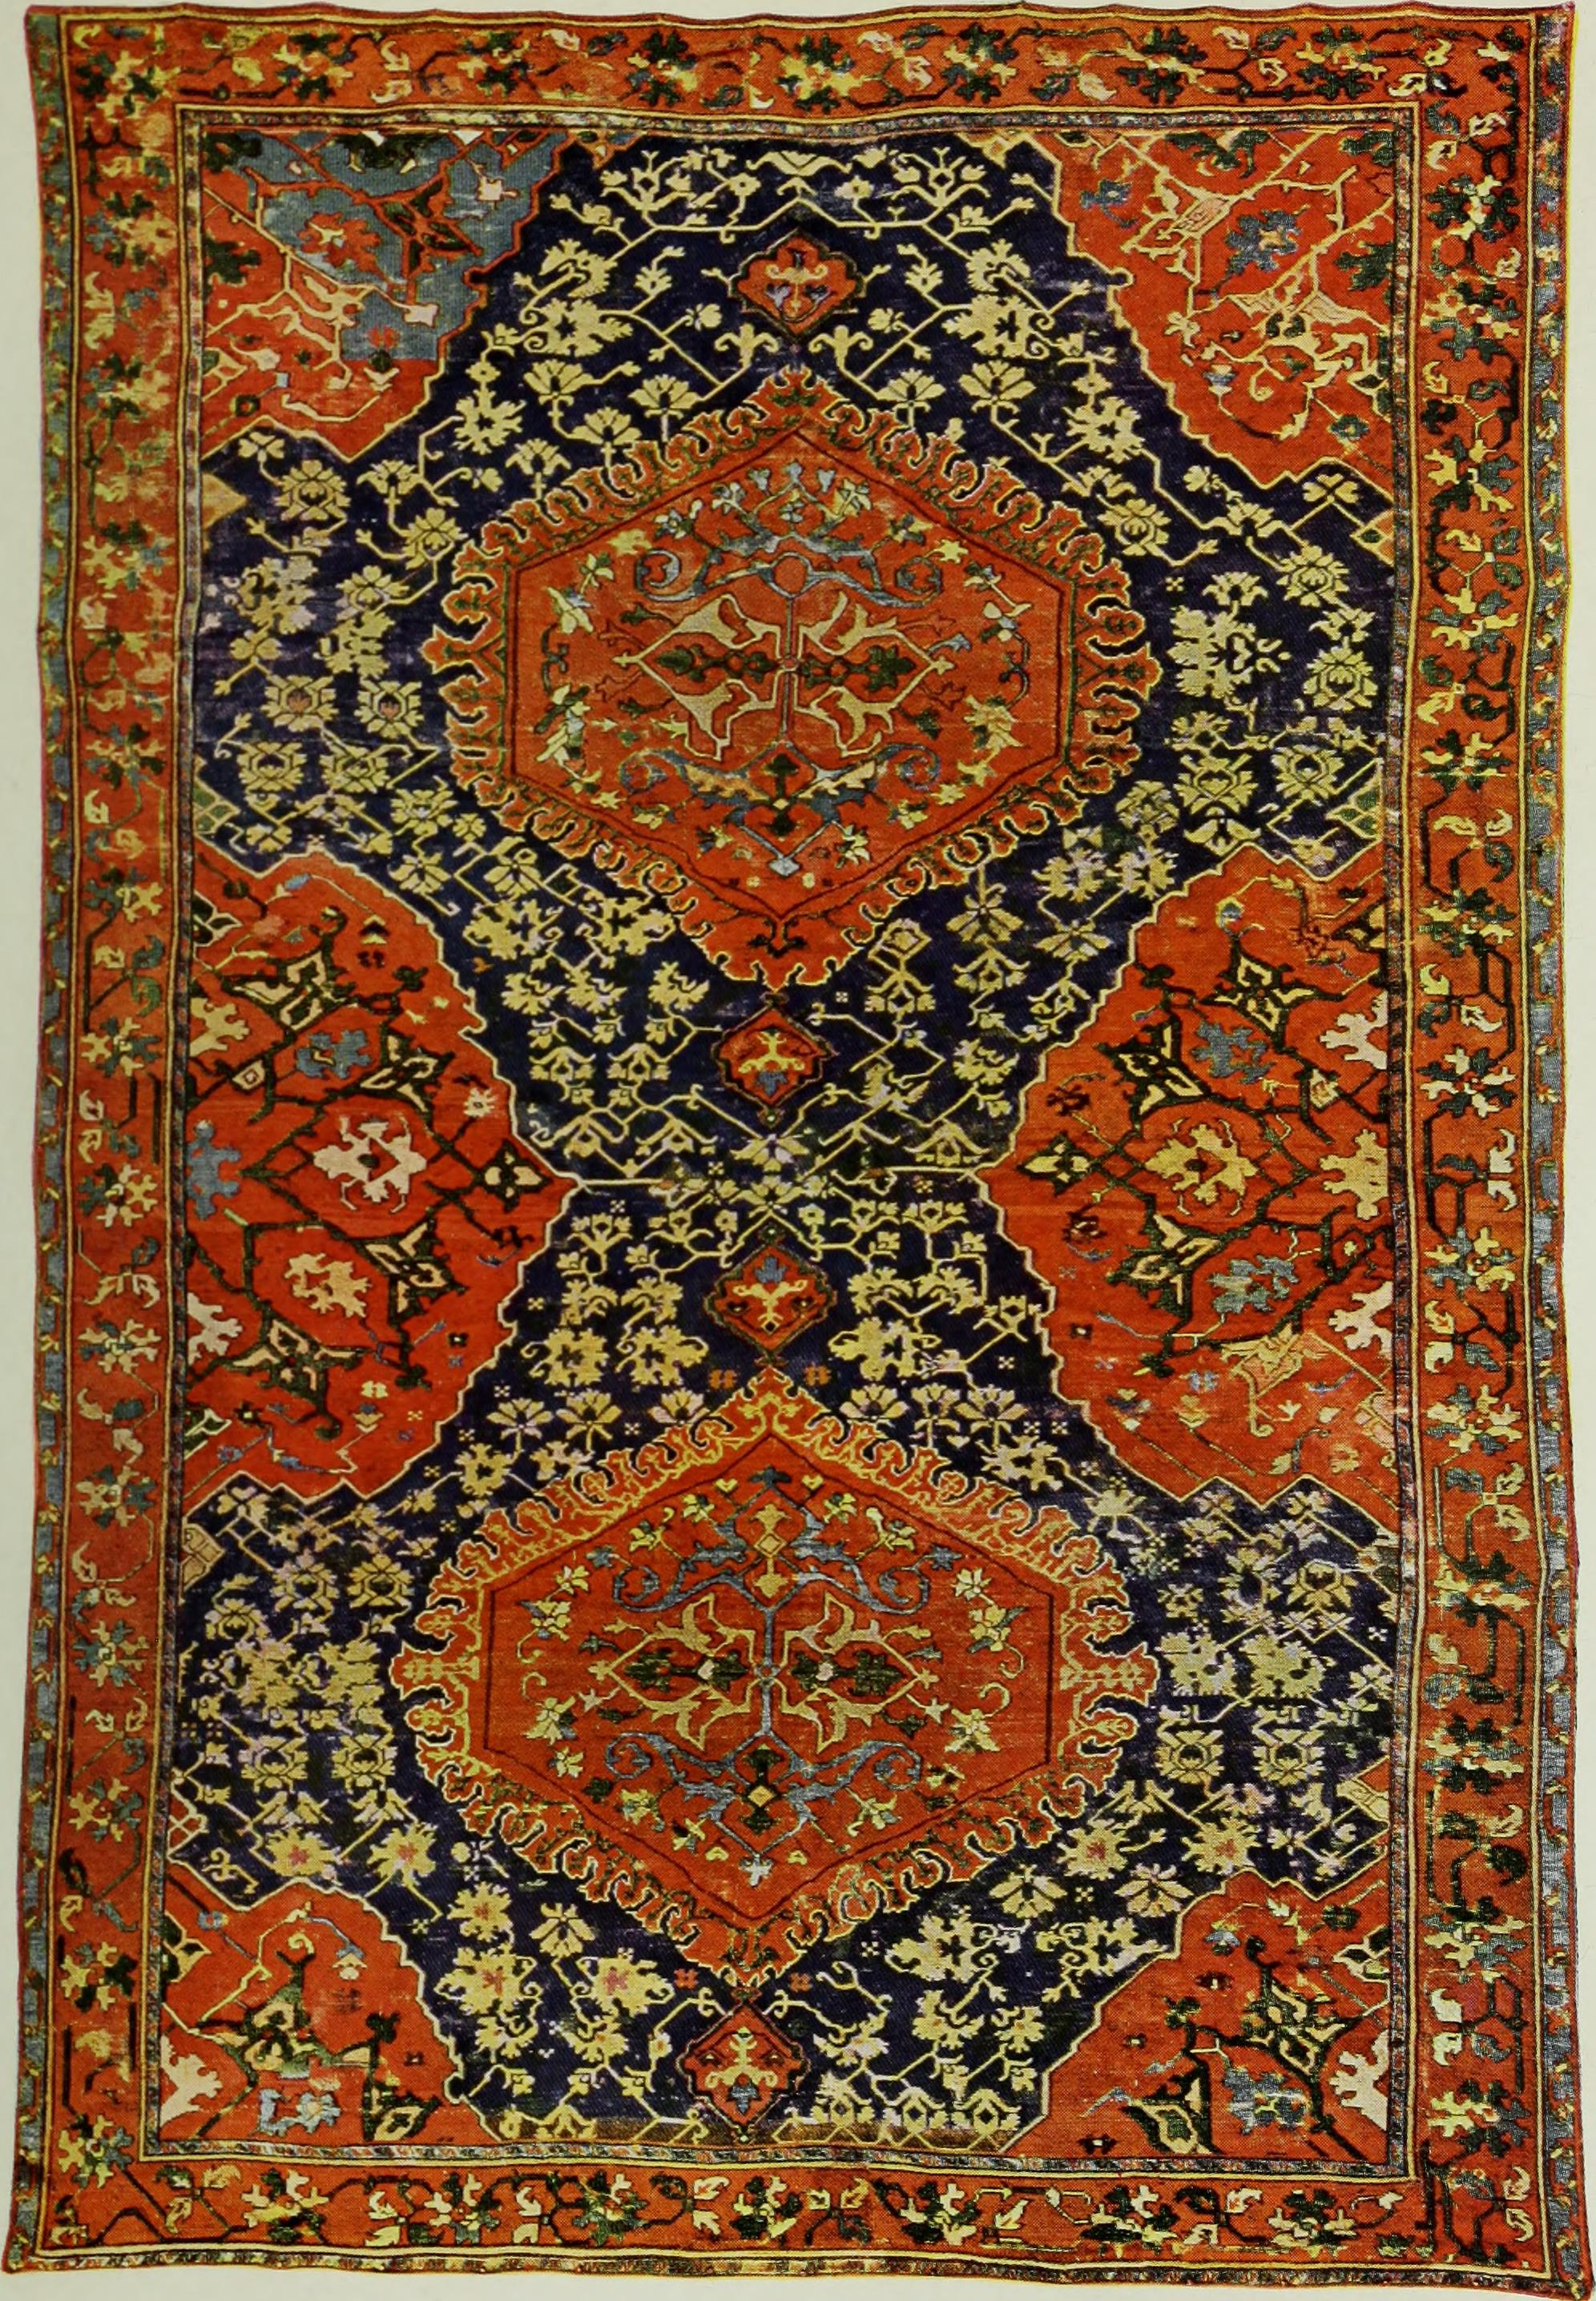 FileOriental rugs, antique and modern (1922) (14780041322